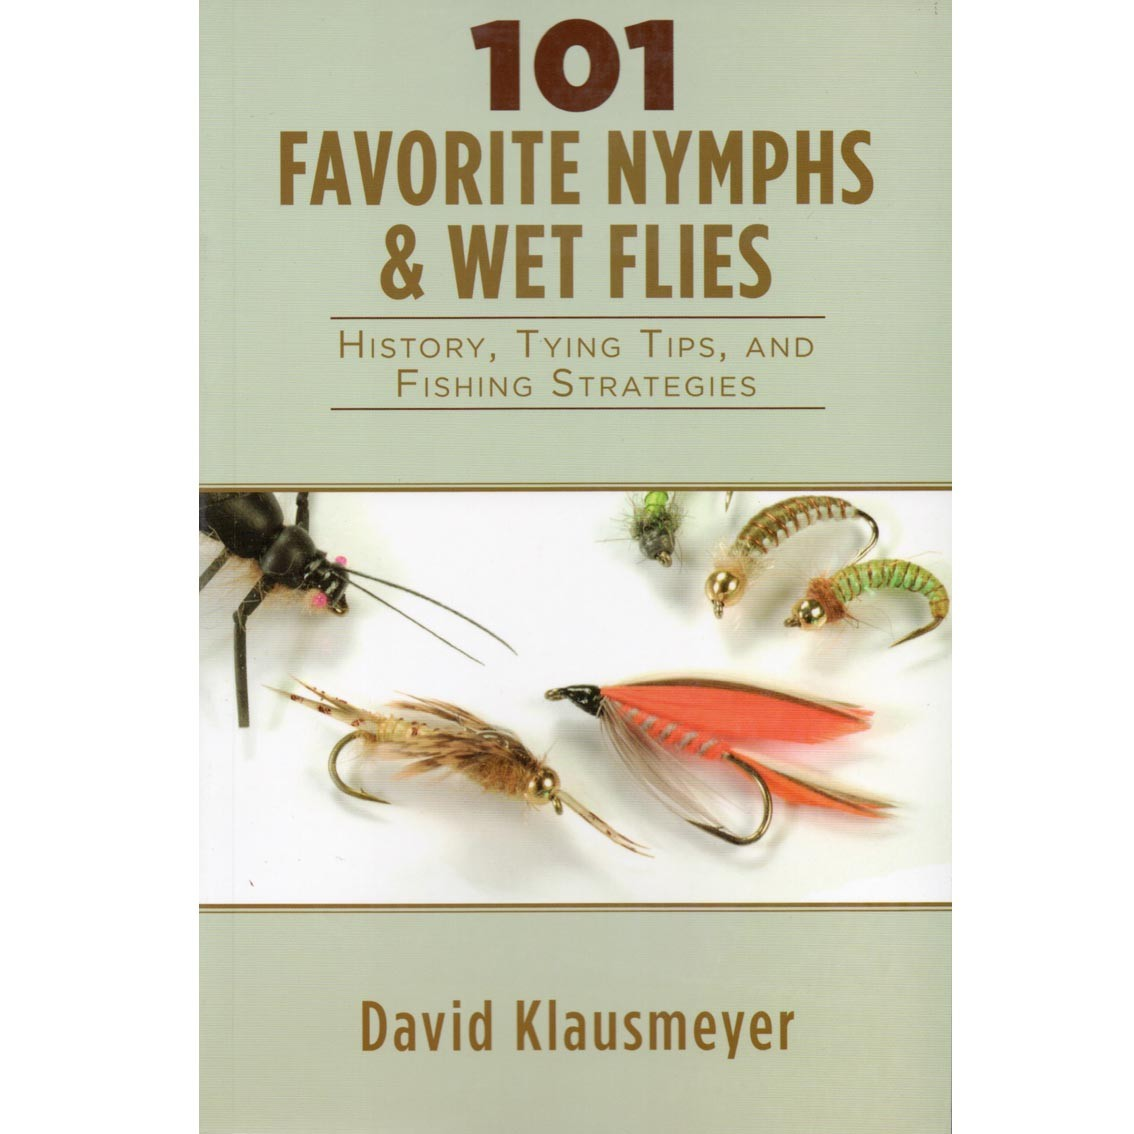 Livro 101 Favorite Nymphs & Wet Flies (David Klausmeyer)